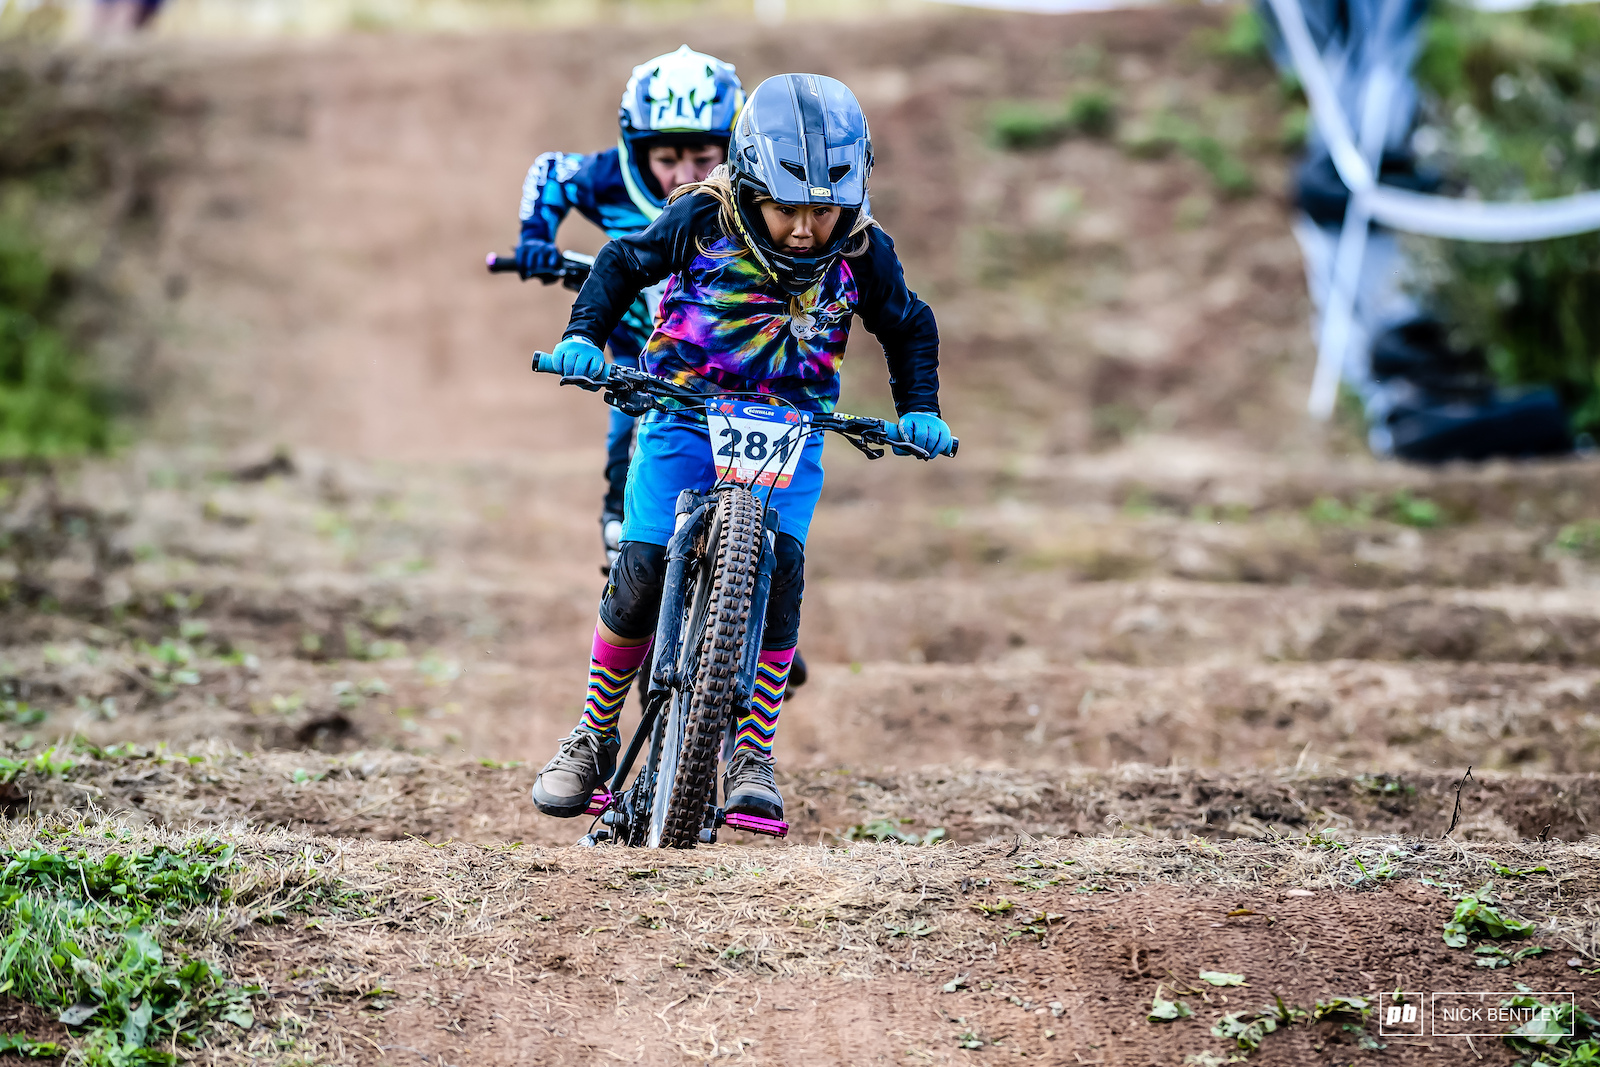 Jacob Washbourne powering his little bike through the whoops.